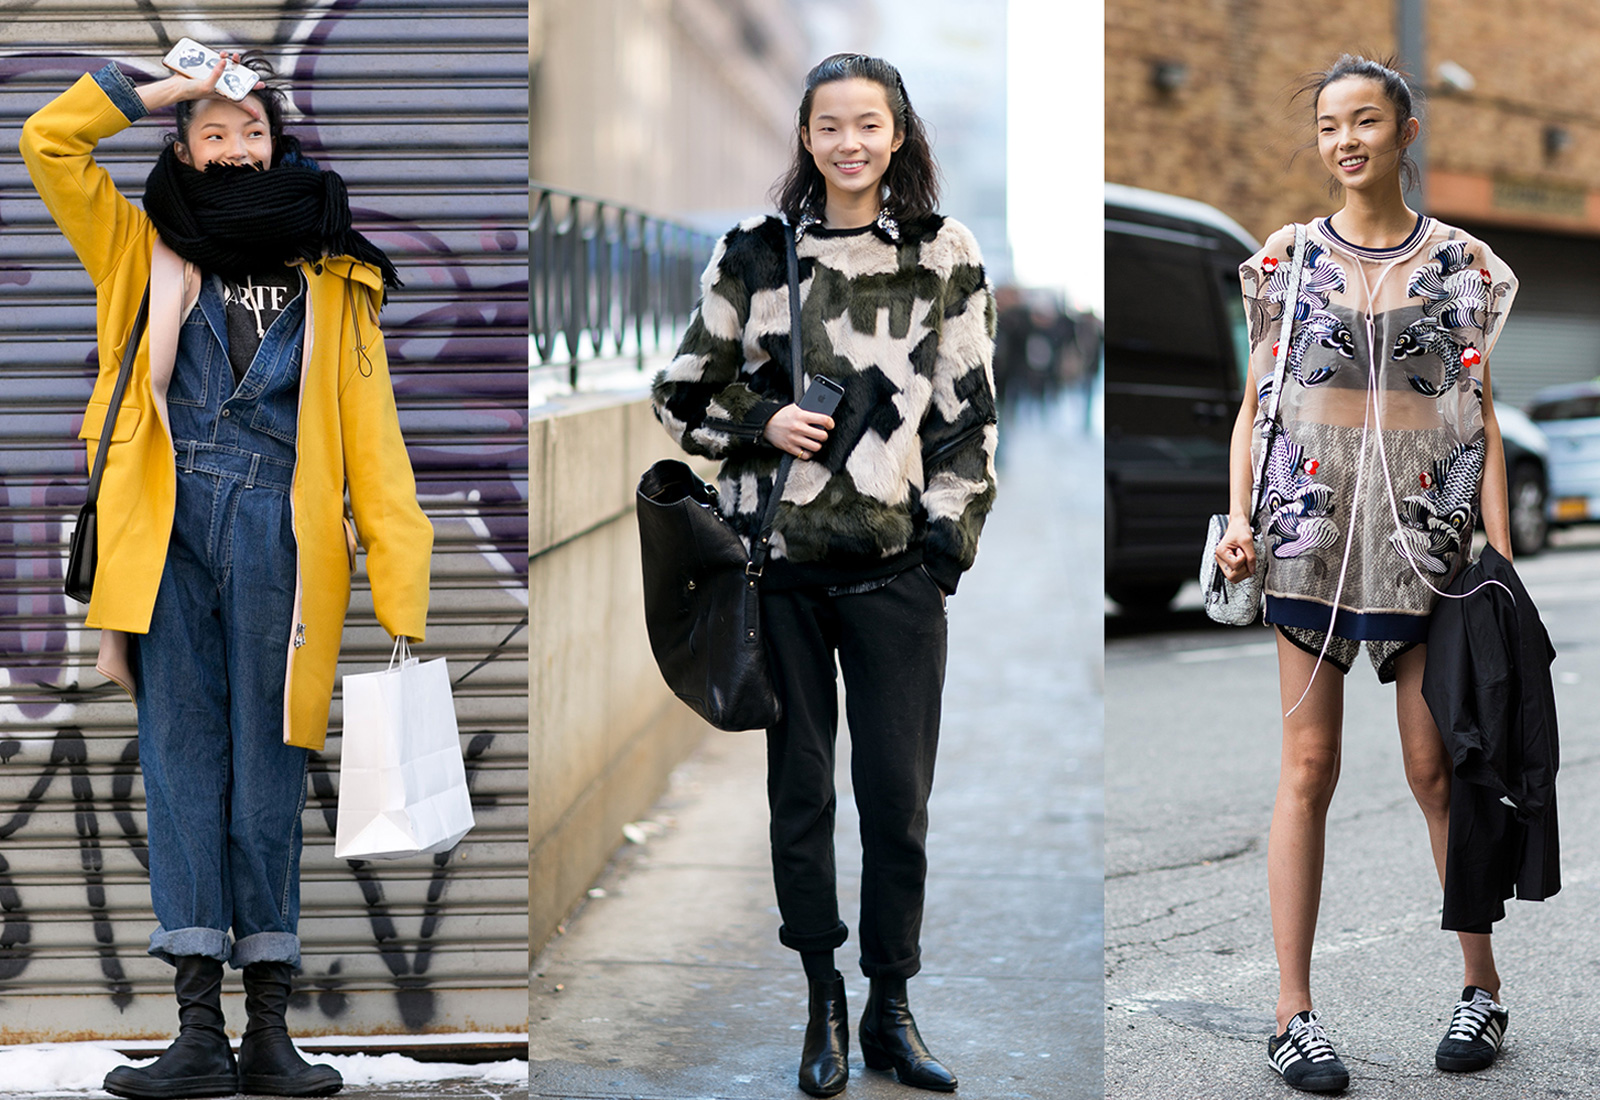 chinese fashion model xiao wen ju street fashion three looks 1600 x 1100